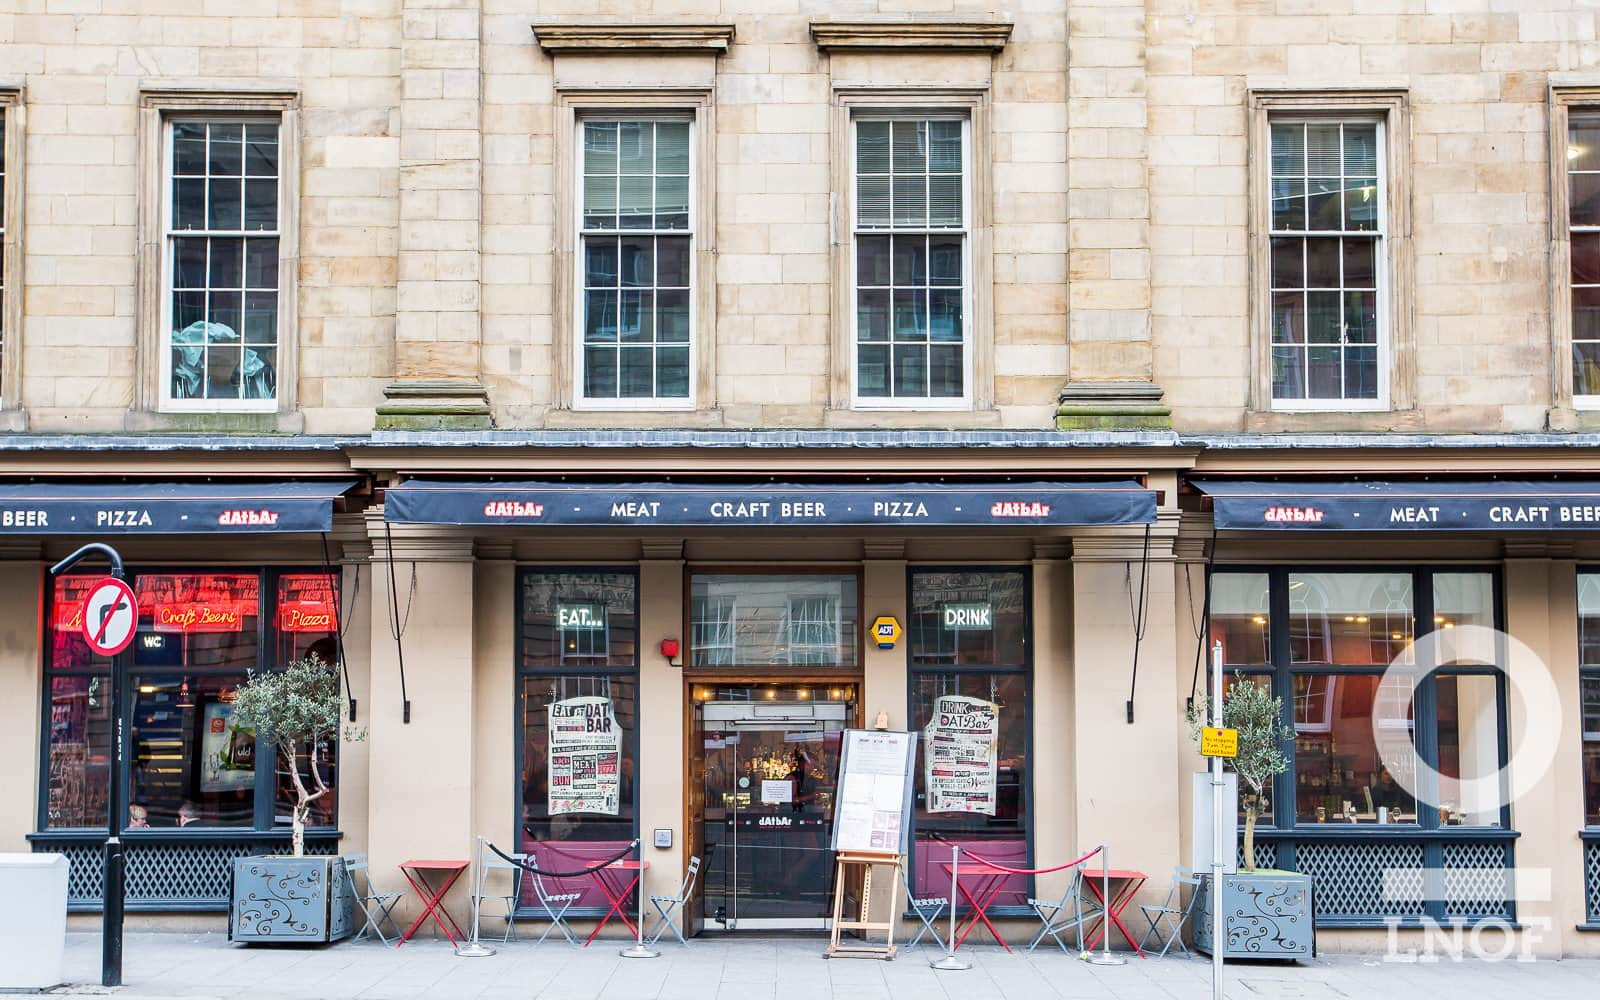 A shot of the exterior of dAt bAr, located in the city centre of Newcastle